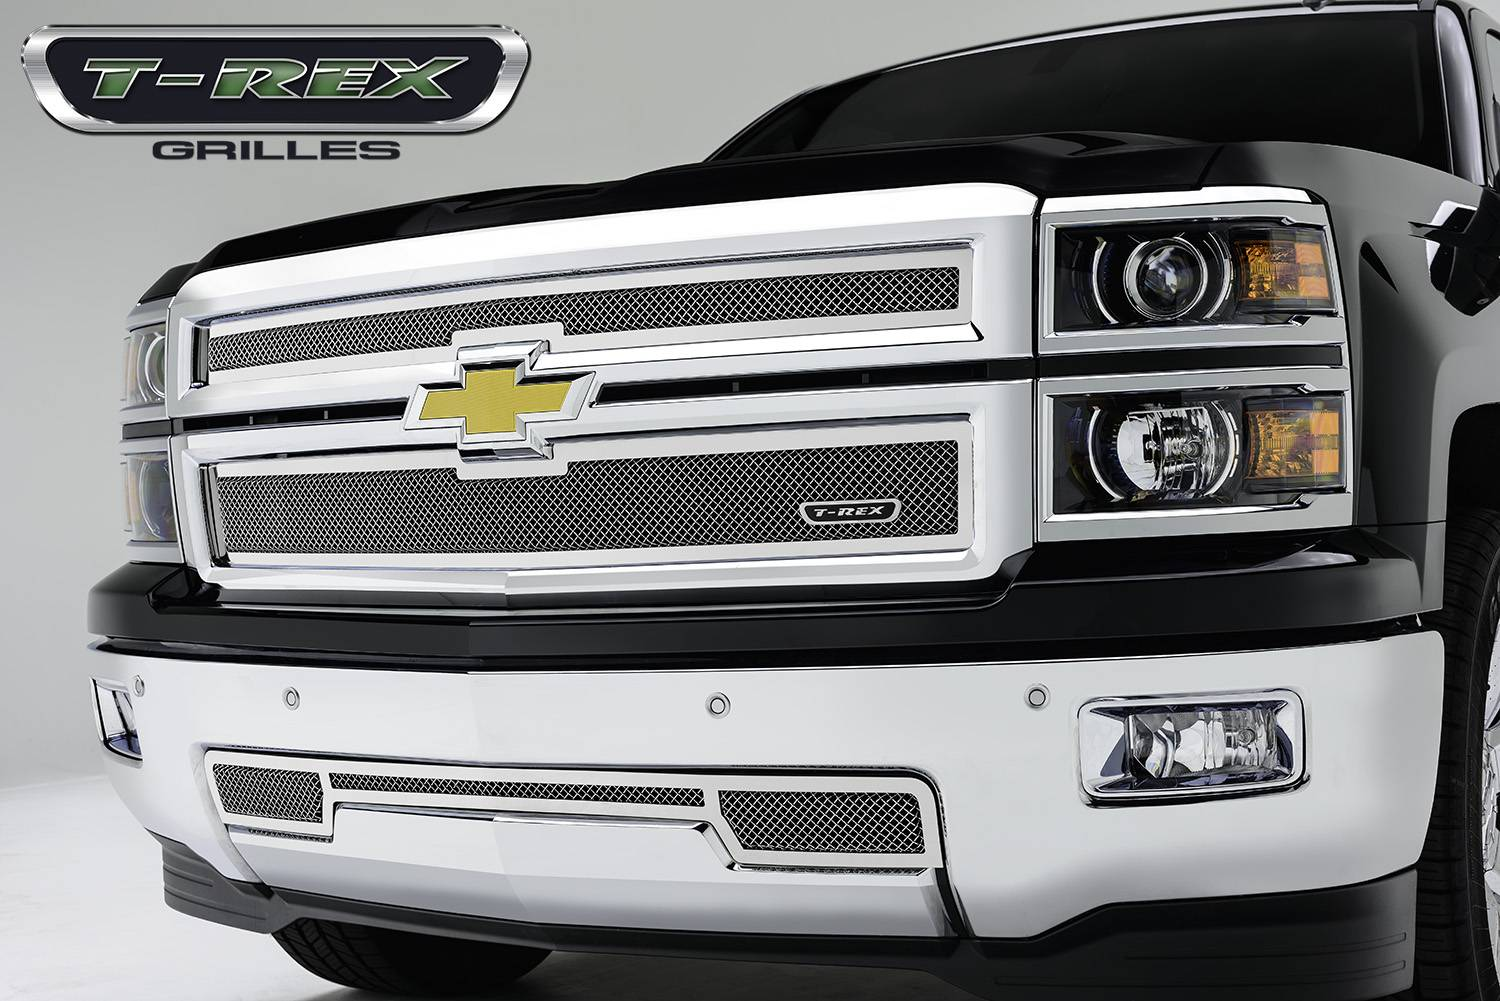 T-REX Chevrolet Silverado Upper Class, Formed Mesh Grille, Main, Replacement, 2 Pc's, Polished Stainless Steel - Pt # 54121